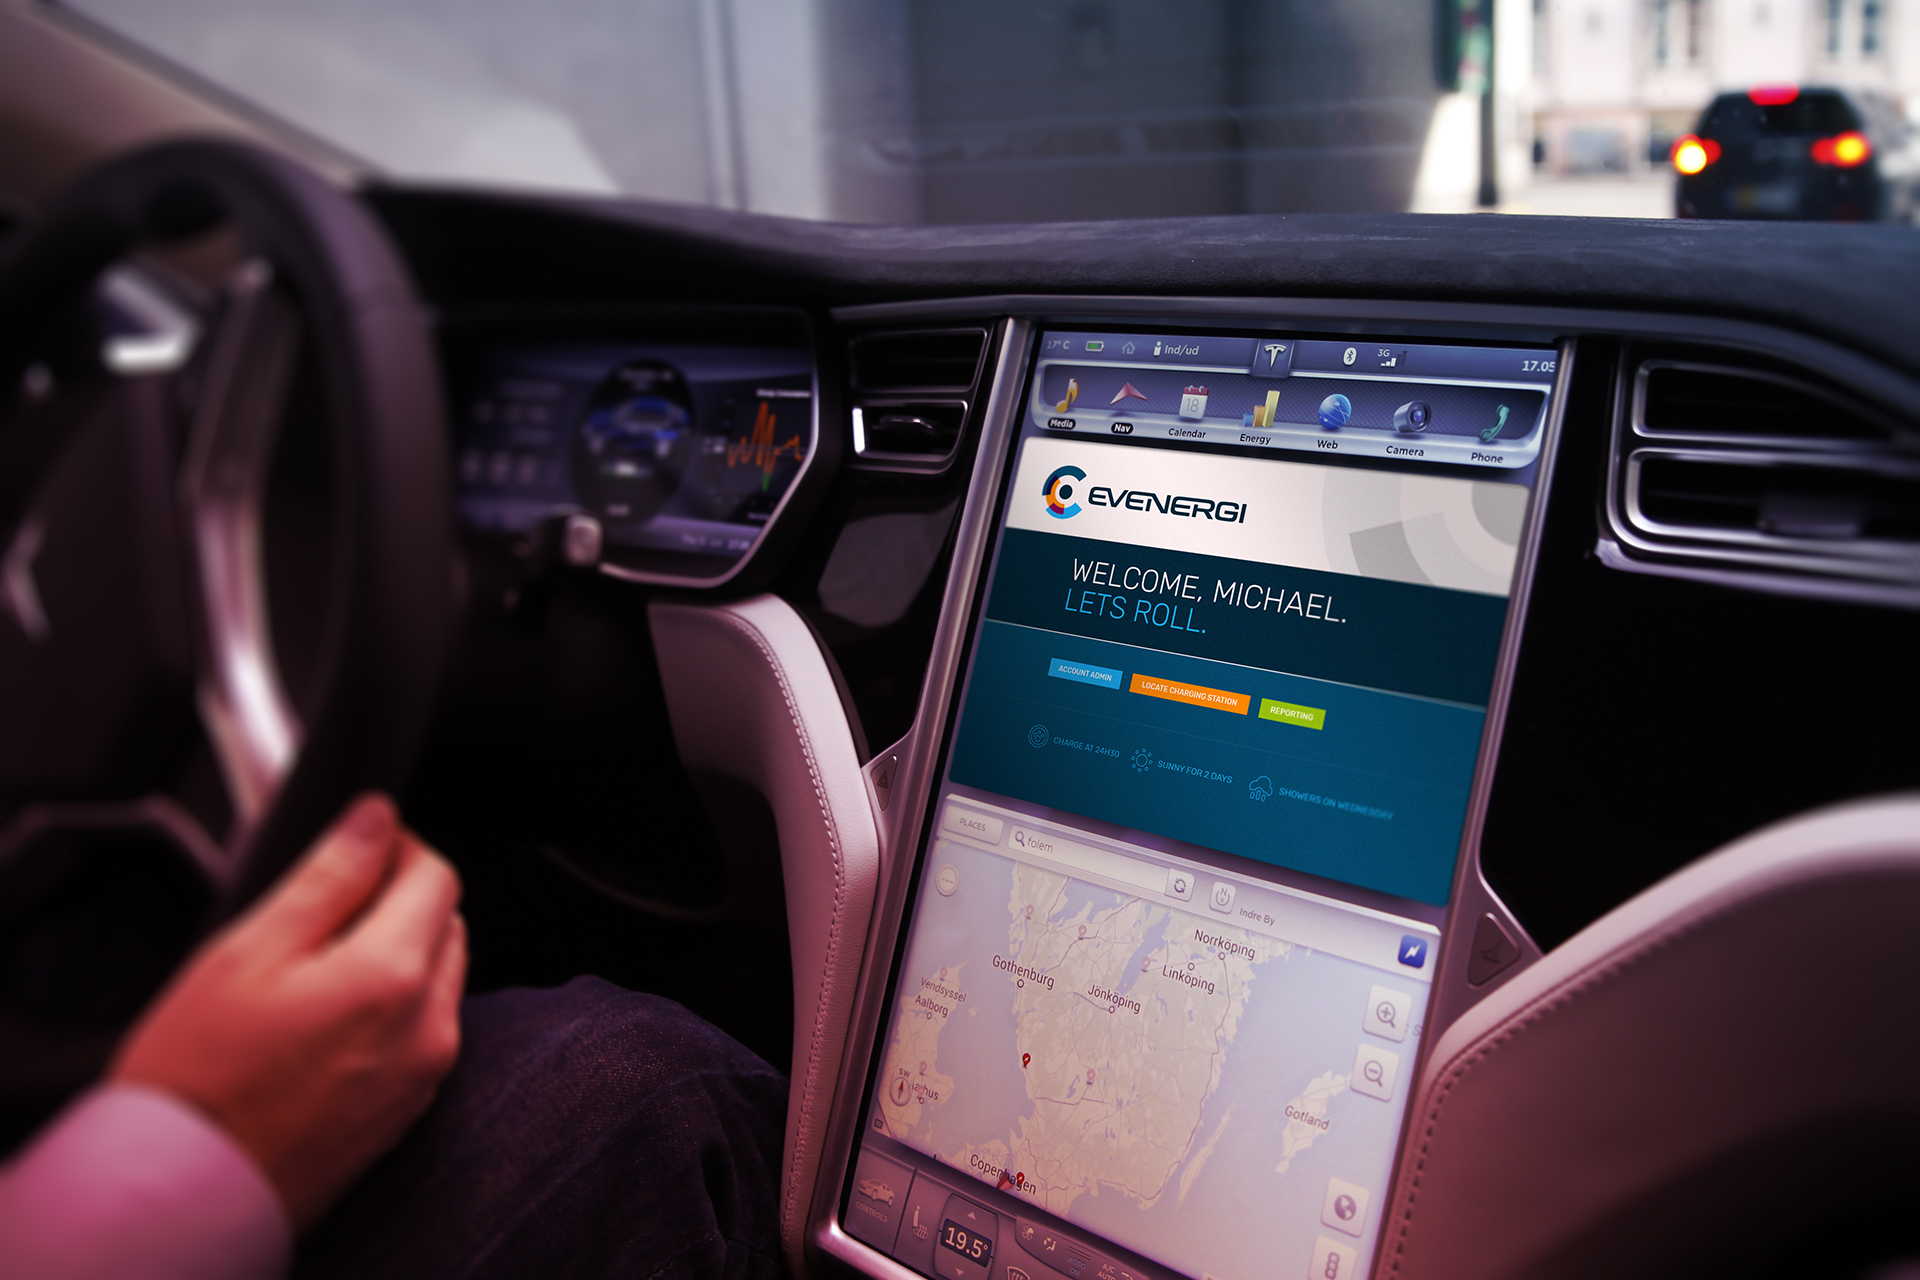 Evenergi also has a technology proposition because a large part of their product offer relates to apps which assist EV drives in understanding energy consumption.